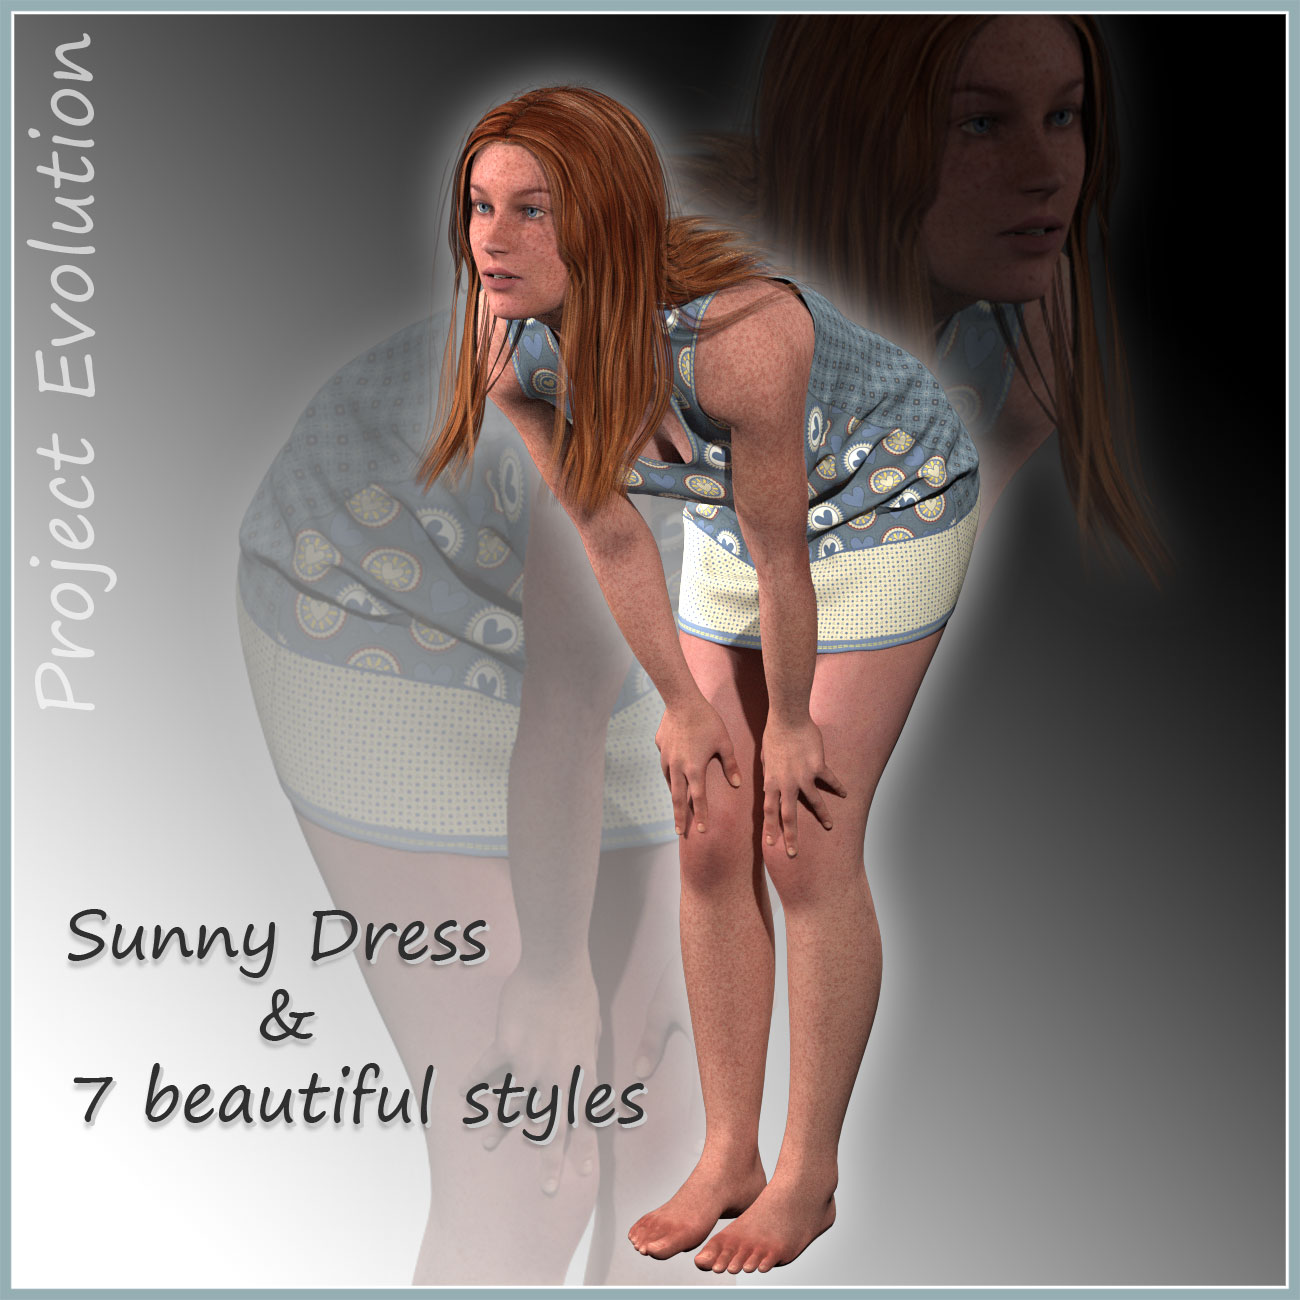 Sunny Dress and 7 Styles for Project Evolution - Poser